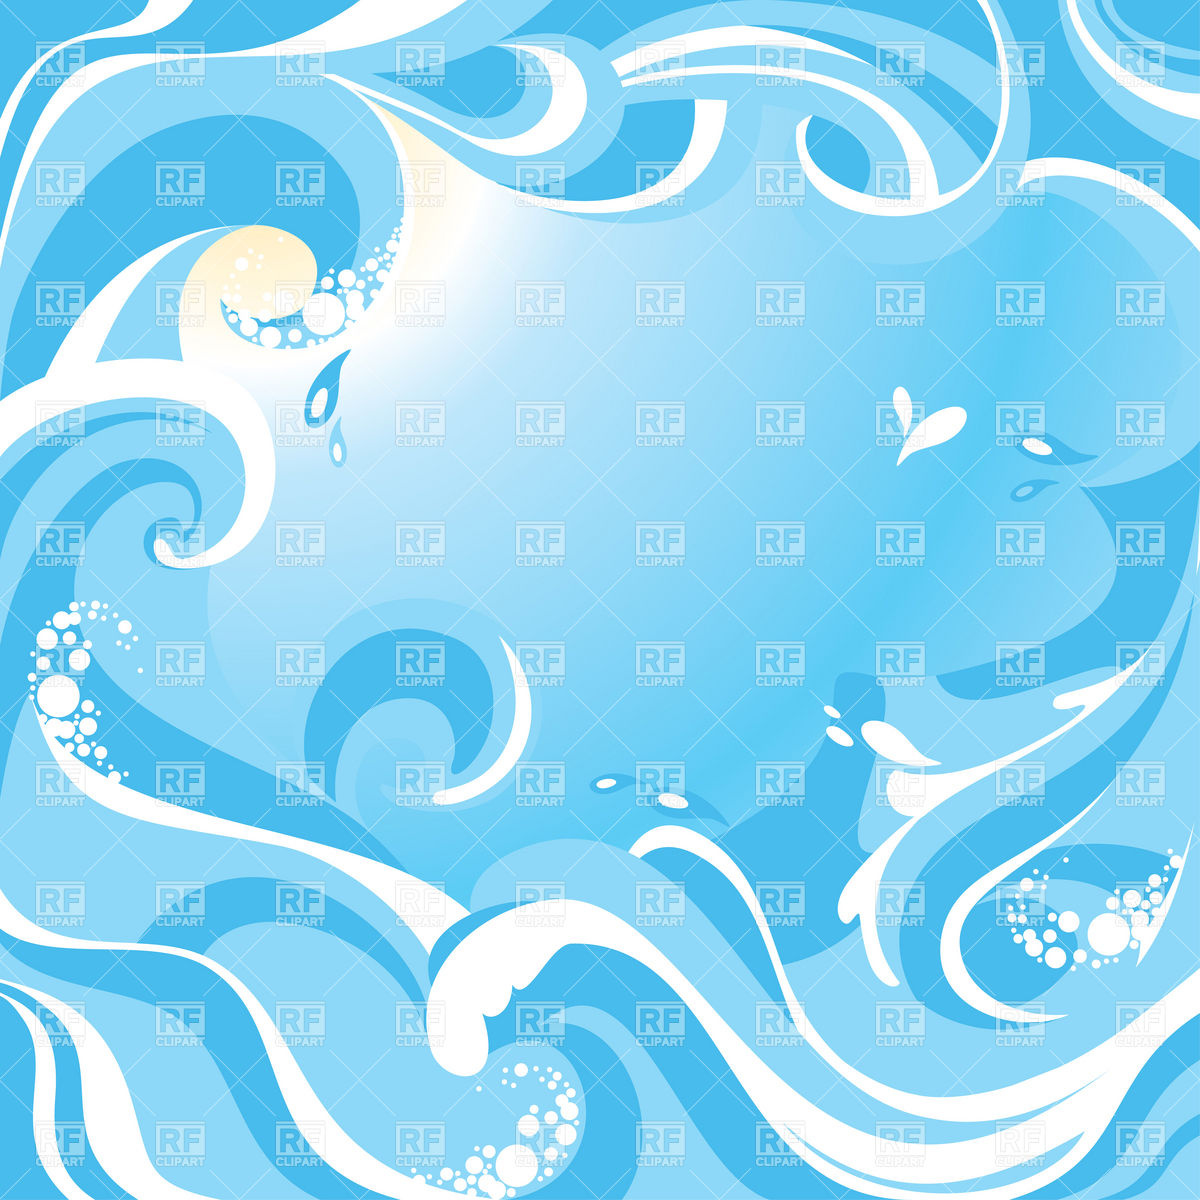 Free clipart ocean graphic black and white download Free Ocean Clipart | Free download best Free Ocean Clipart on ... graphic black and white download